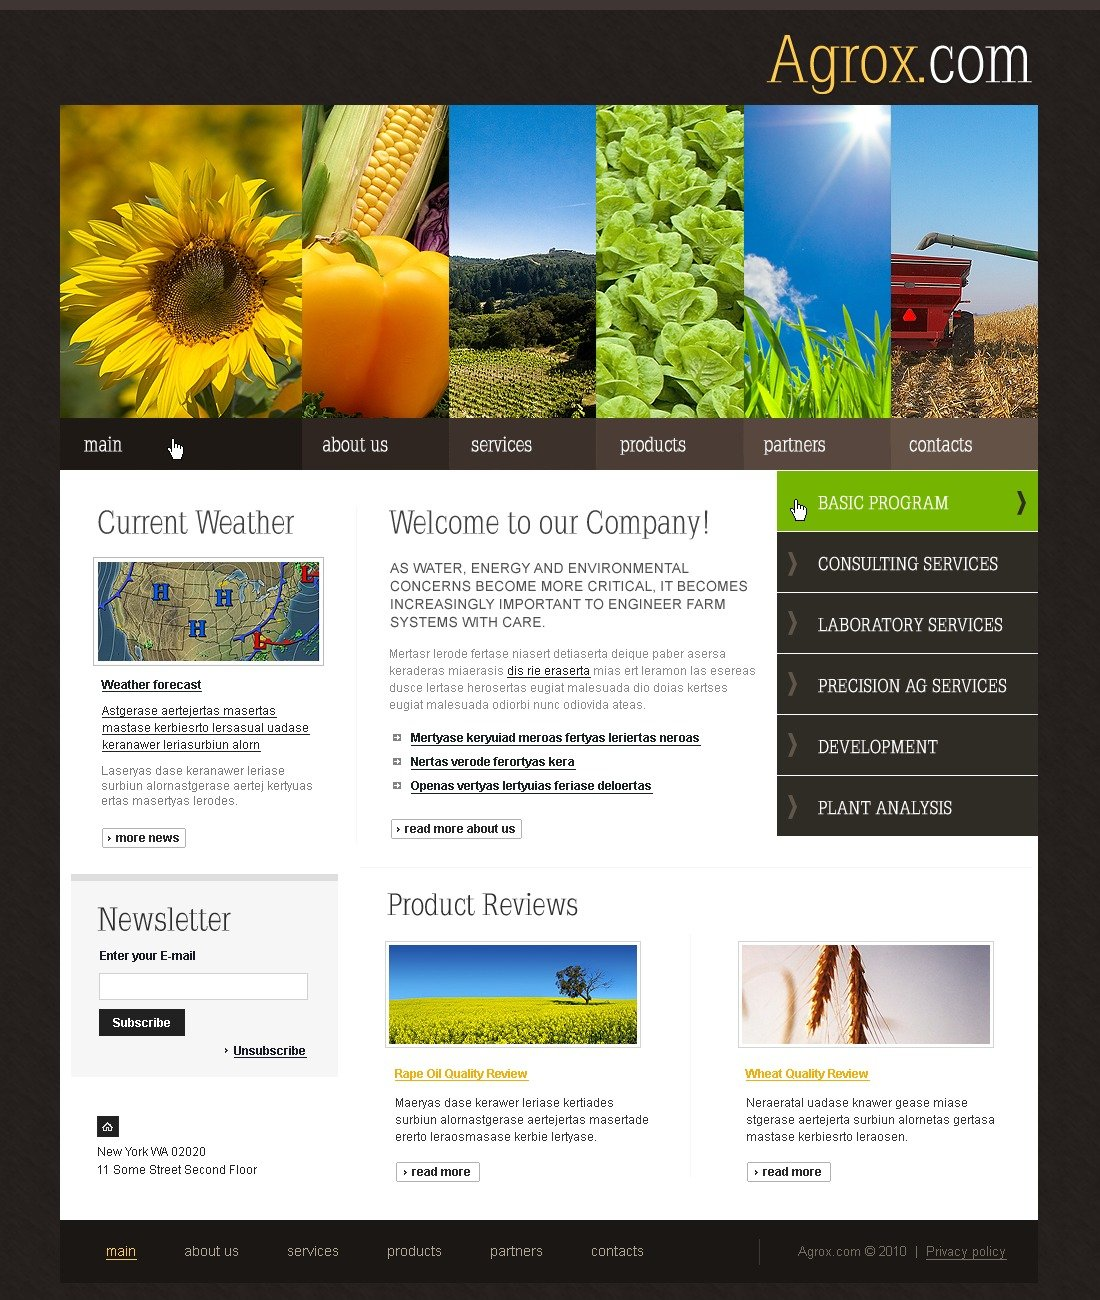 The Agrox Com PSD Design 54383, one of the best PSD templates of its kind (agriculture, wide, jquery), also known as agrox com PSD template, agriculture company PSD template, business PSD template, grain-crops PSD template, cereals PSD template, field PSD template, combine PSD template, harvest PSD template, farming PSD template, plants PSD template, services PSD template, products solutions PSD template, market PSD template, delivery PSD template, resource PSD template, grassland PSD template, equipment PSD template, nitrates PSD template, fertilizer PSD template, clients PSD template, partners PSD template, innovations PSD template, support PSD template, information dealer PSD template, stocks PSD template, tea and related with agrox com, agriculture company, business, grain-crops, cereals, field, combine, harvest, farming, plants, services, products solutions, market, delivery, resource, grassland, equipment, nitrates, fertilizer, clients, partners, innovations, support, information dealer, stocks, tea, etc.